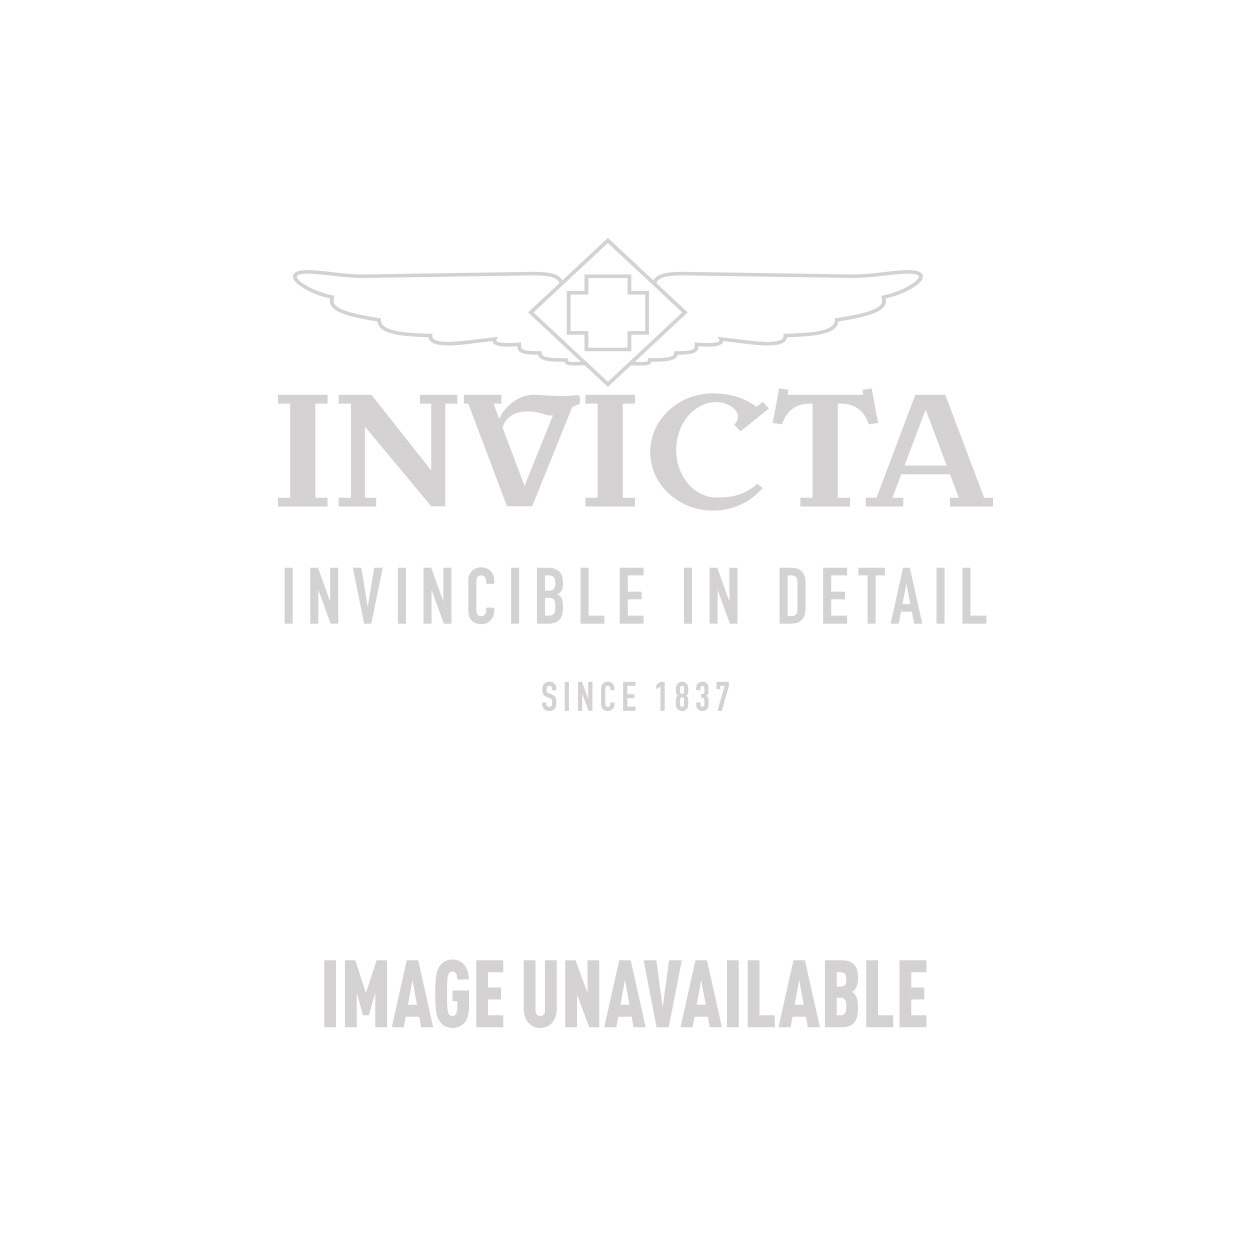 Invicta S1 Rally Swiss Made Quartz Watch - Stainless Steel case with Black, Orange tone Leather band - Model 19516